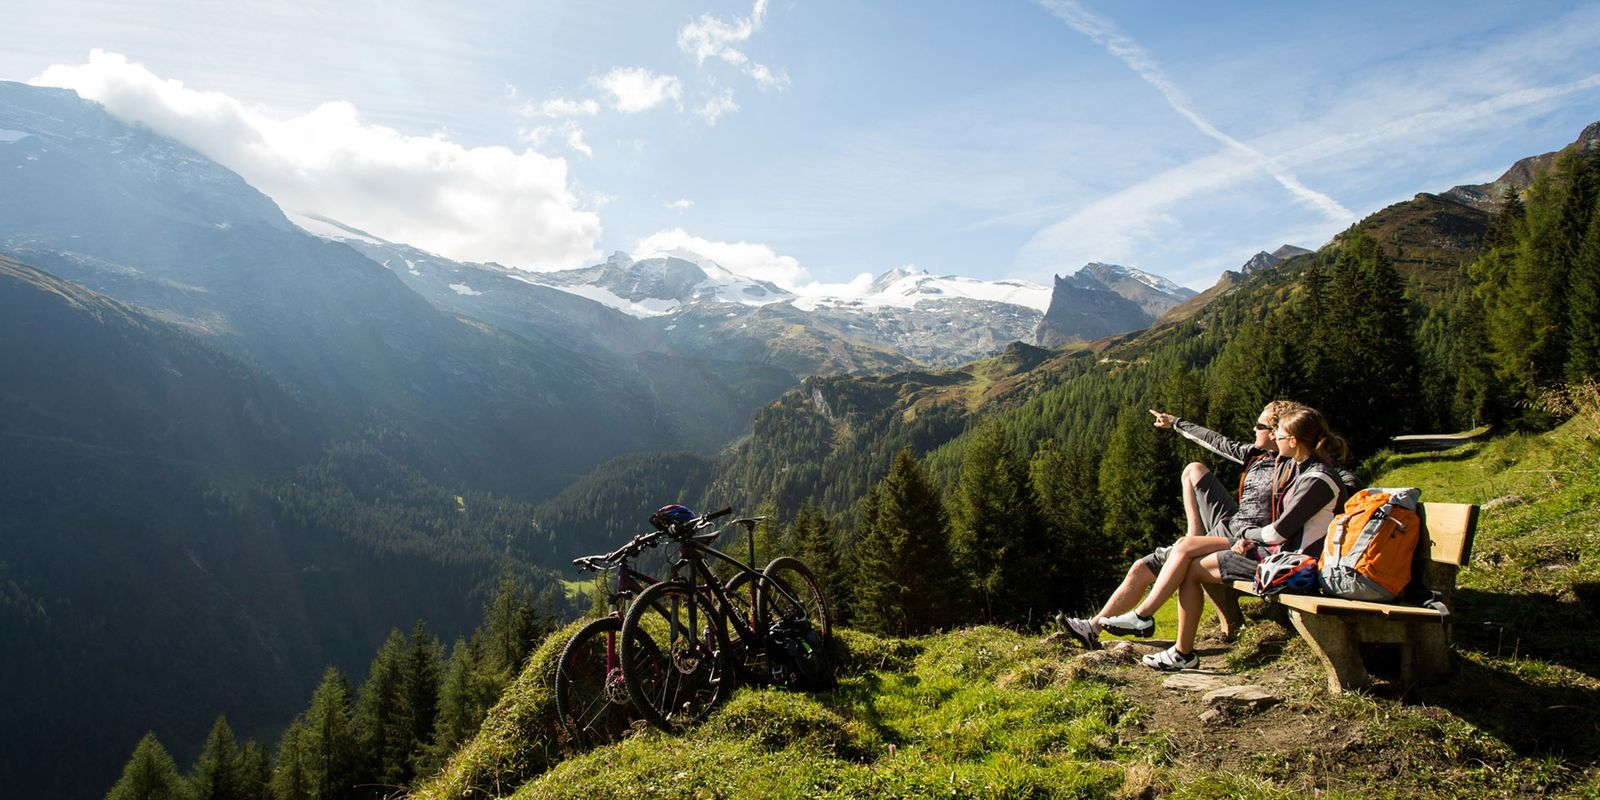 Mountain biking in the Zillertal